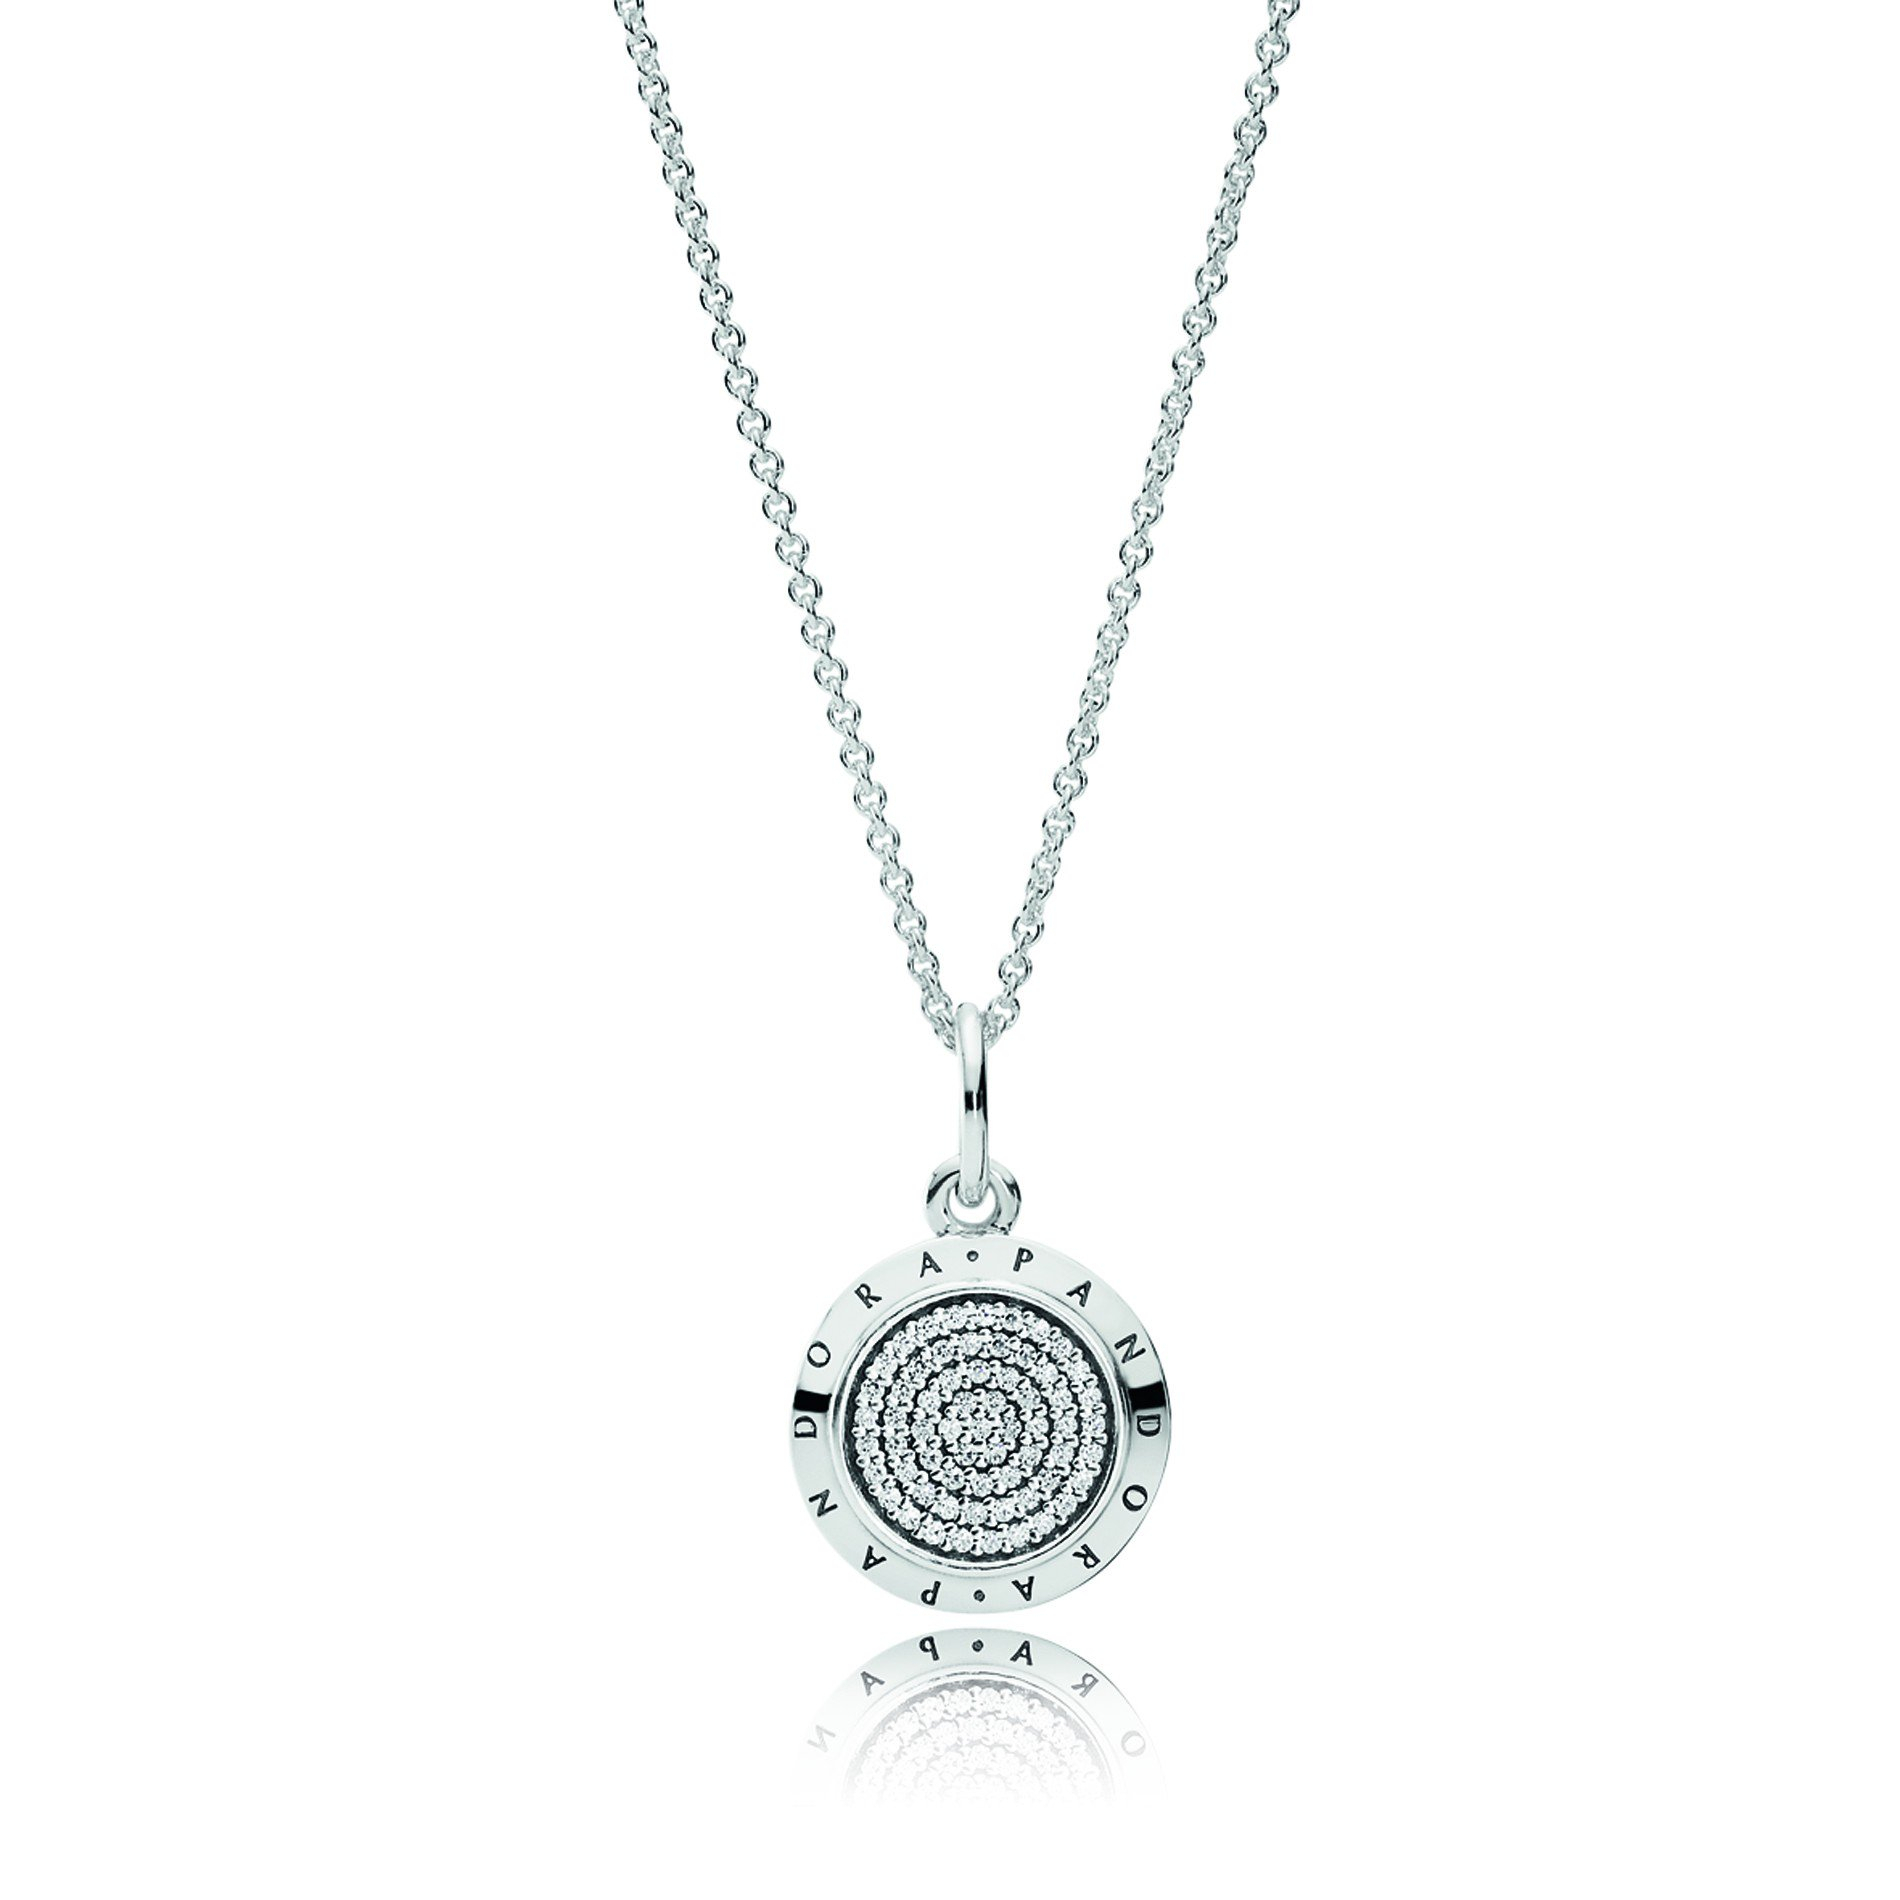 Pandora Signature Necklace, 70Cm In Most Recently Released Pandora Lockets Logo Necklaces (View 24 of 25)